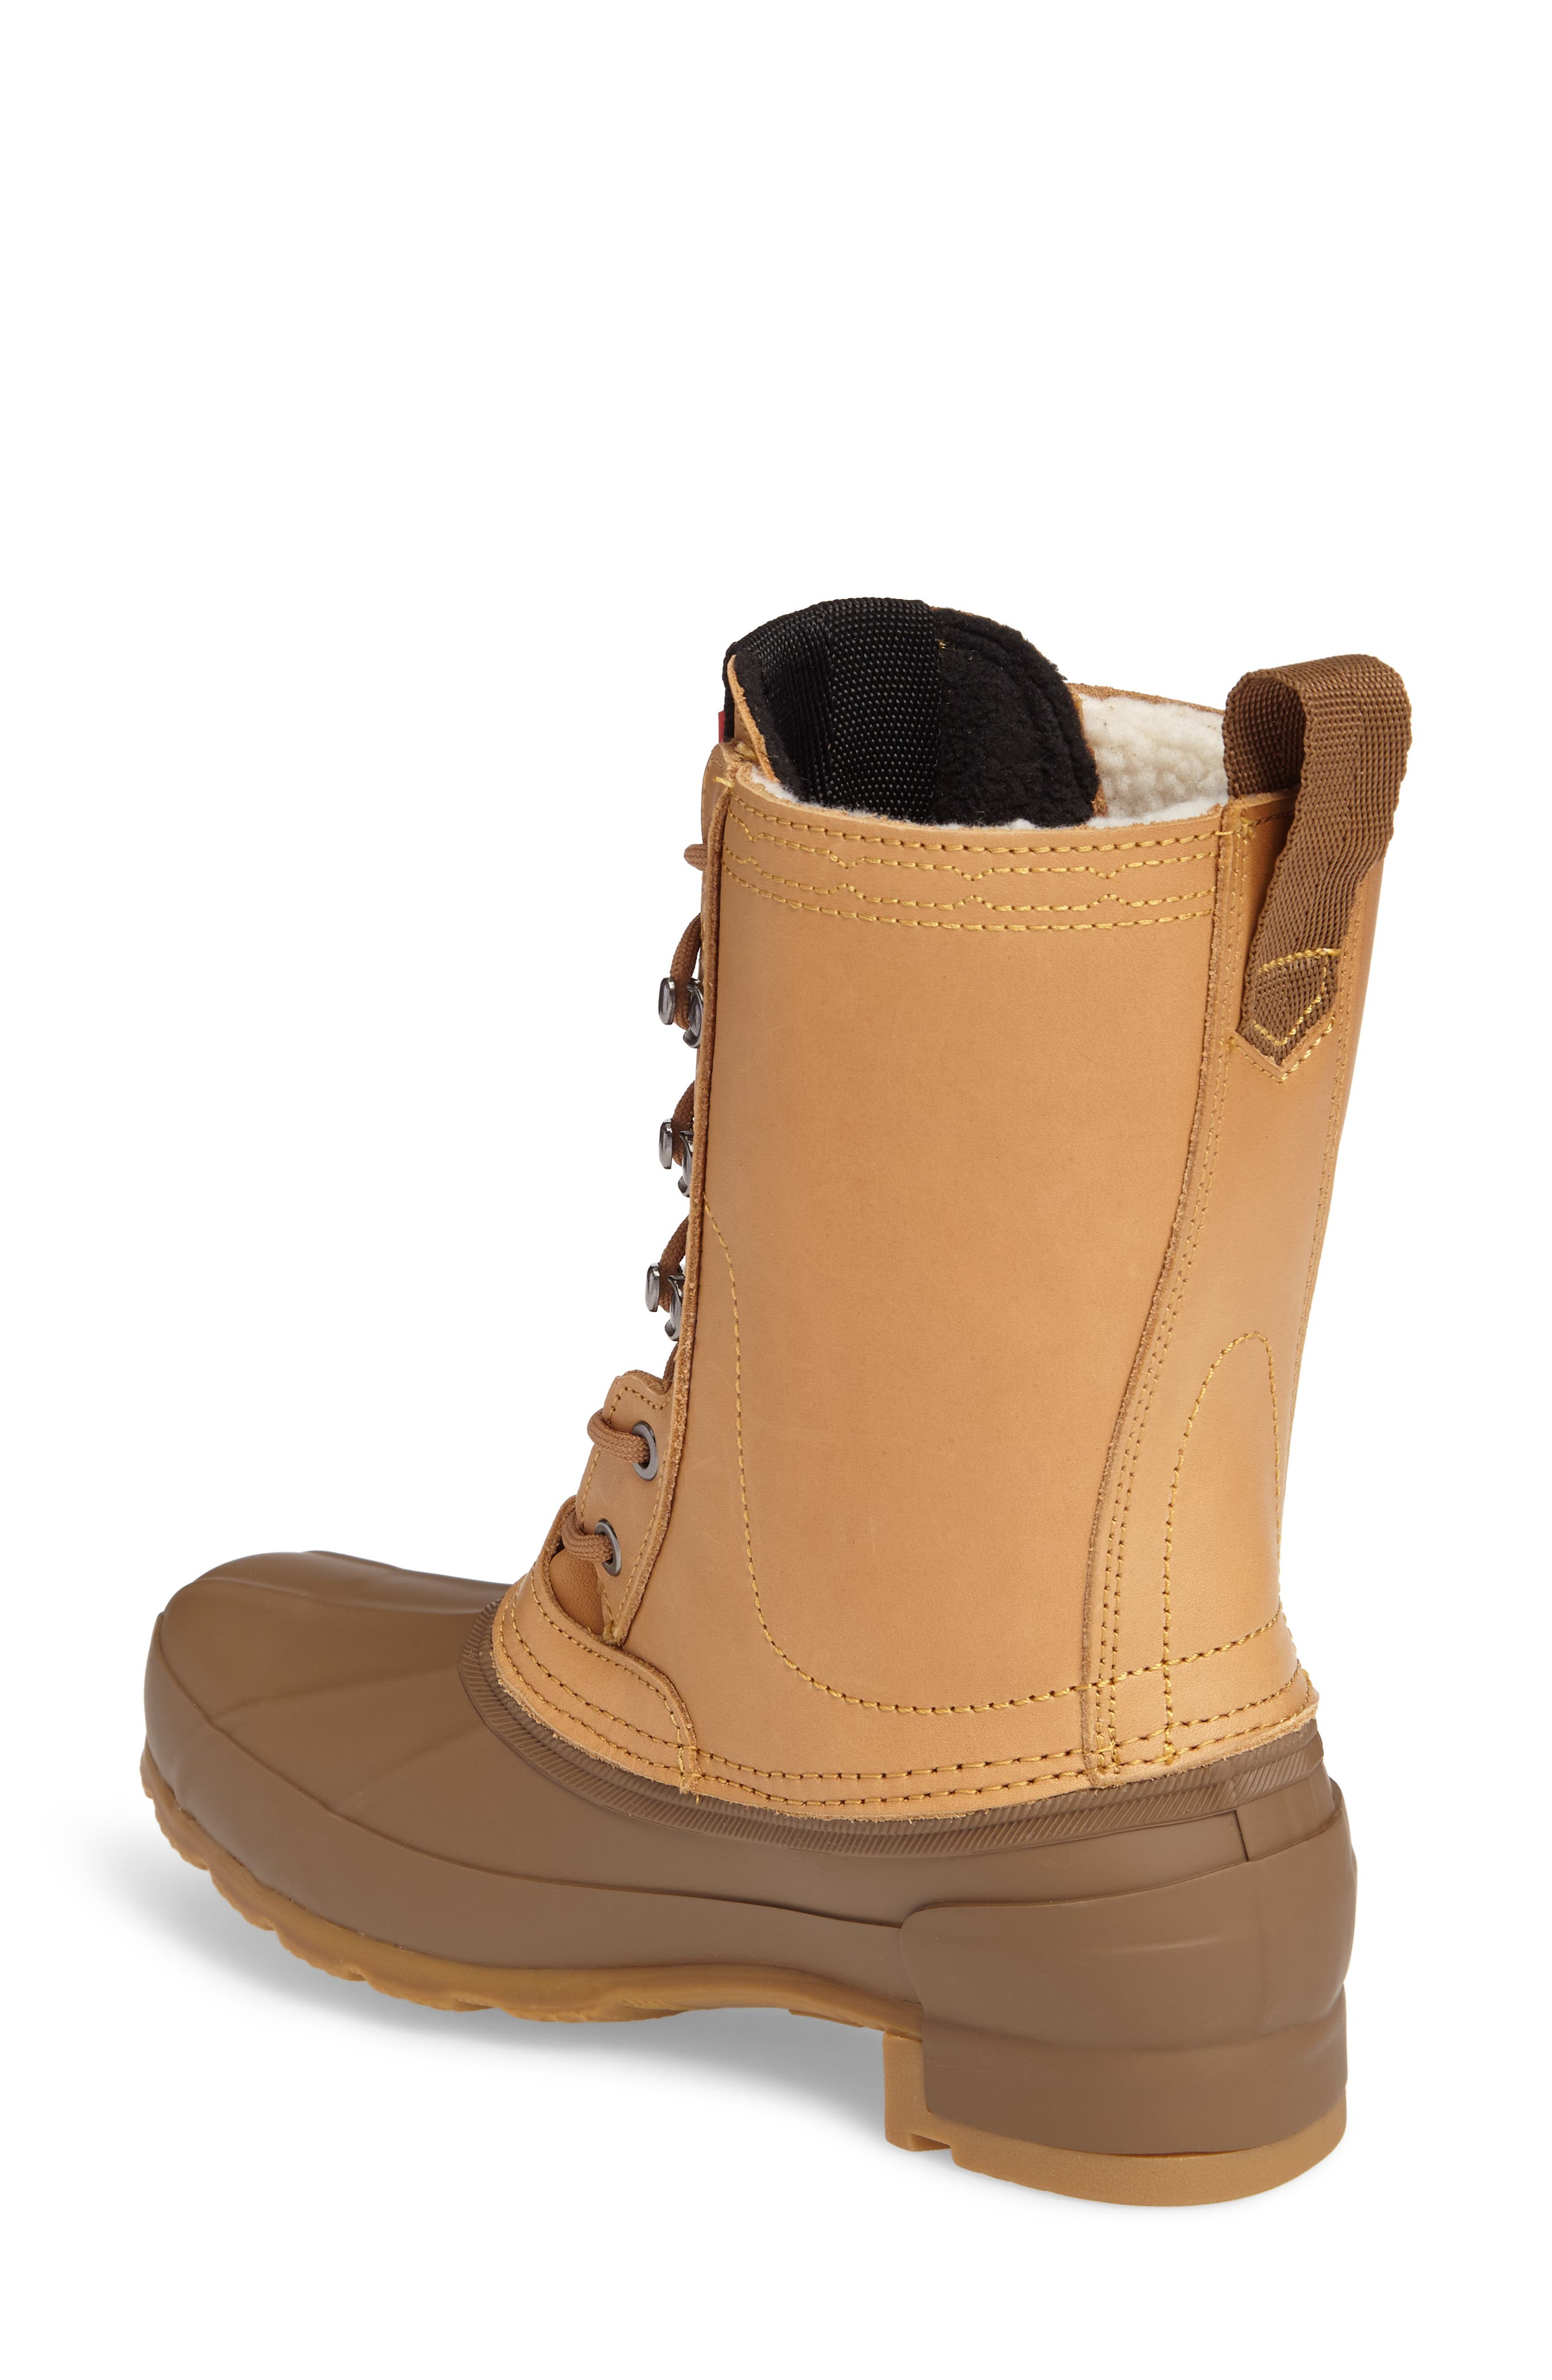 Original Insulated Boot,                             Alternate thumbnail 2, color,                             246